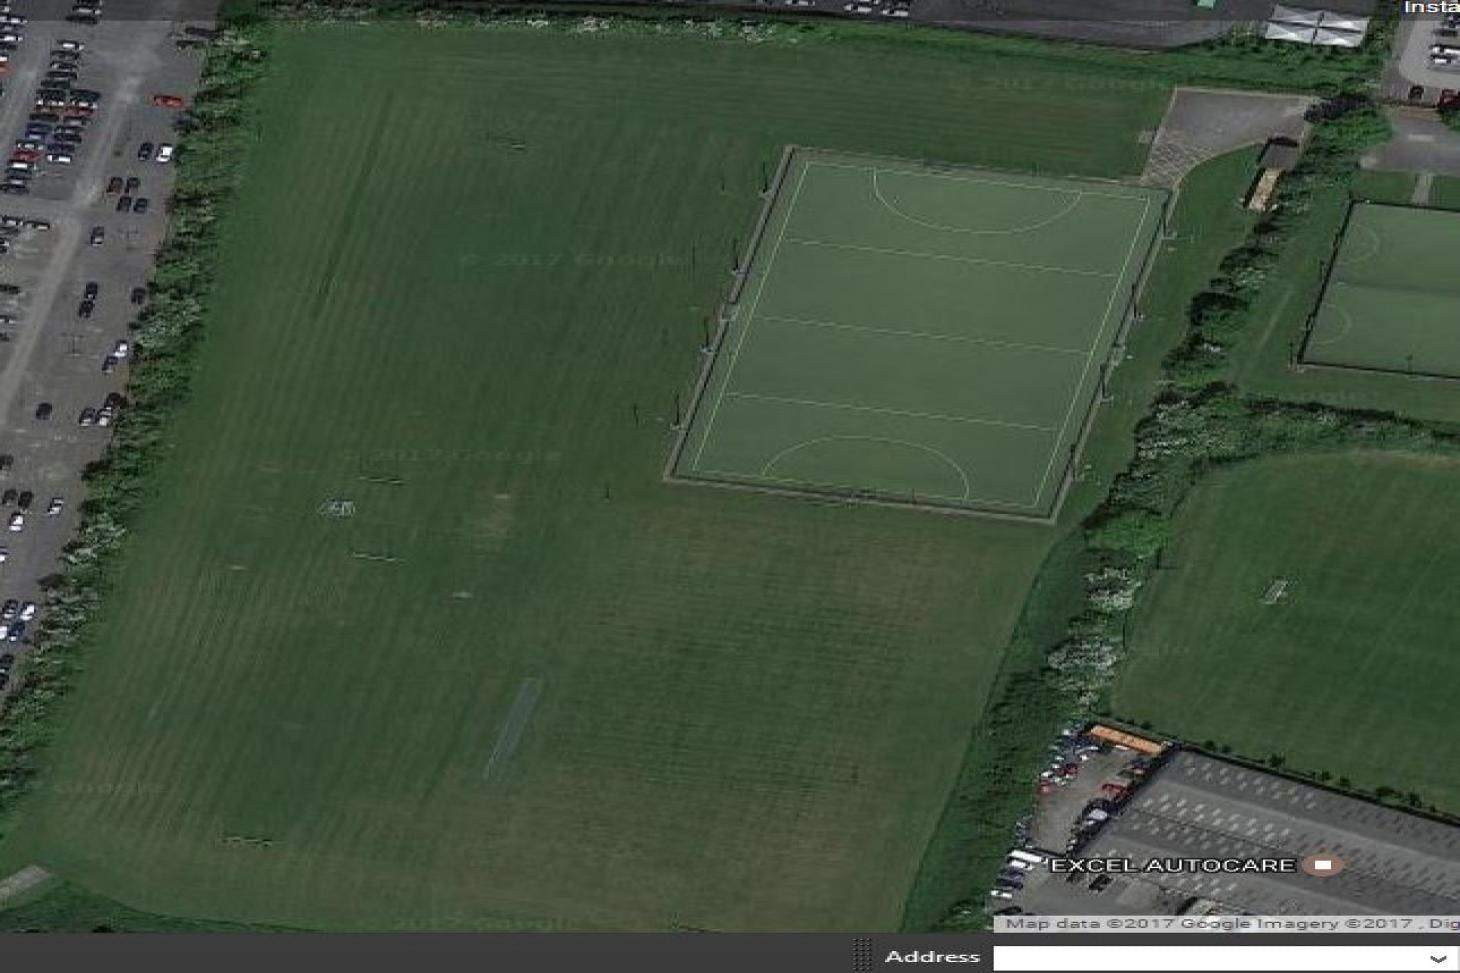 Royal College of Surgeons Sports Grounds Union   Grass rugby pitch